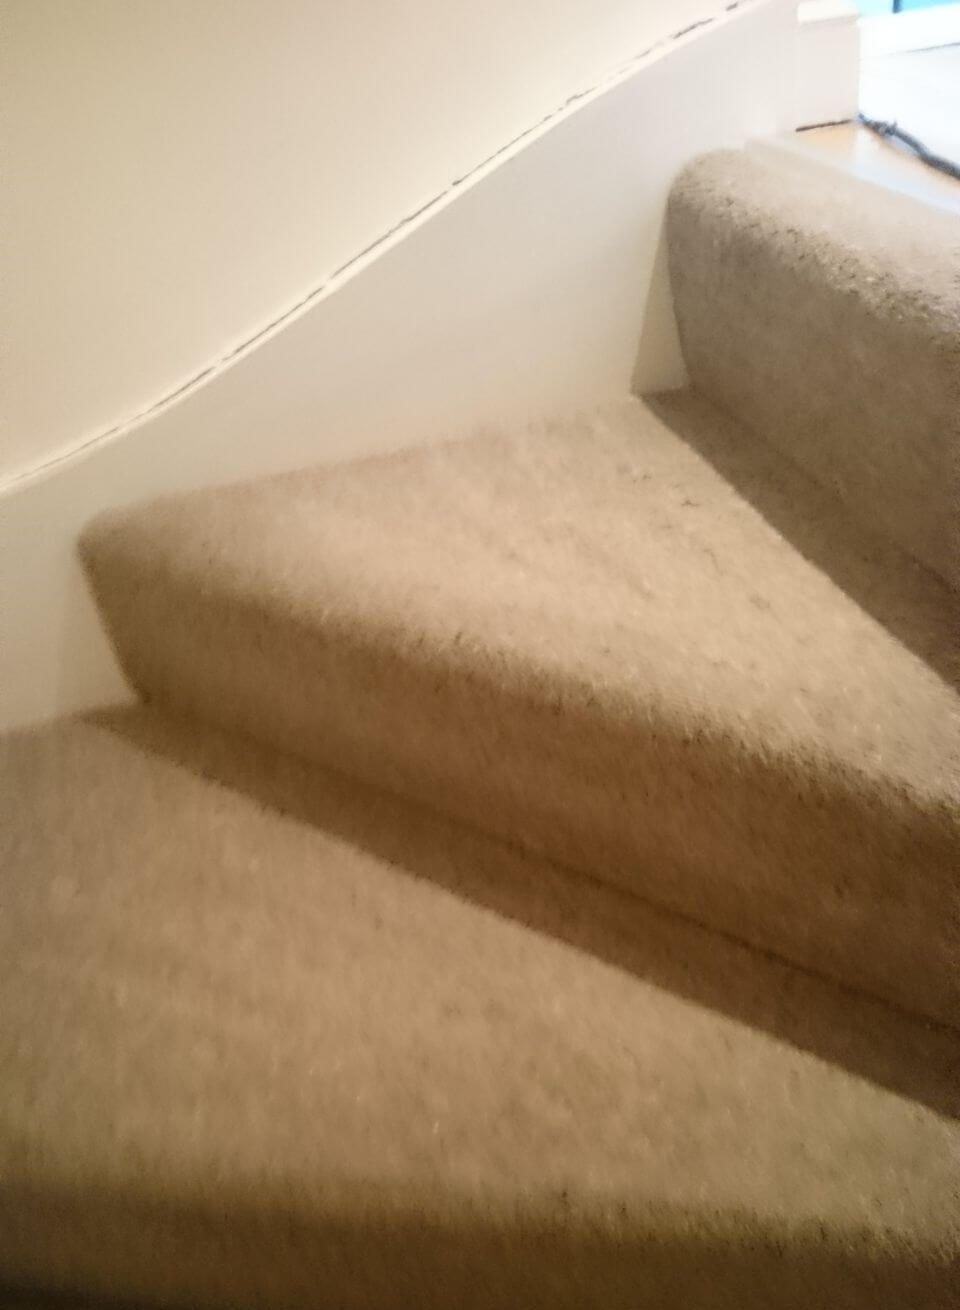 cleaning a carpet stain New Addington